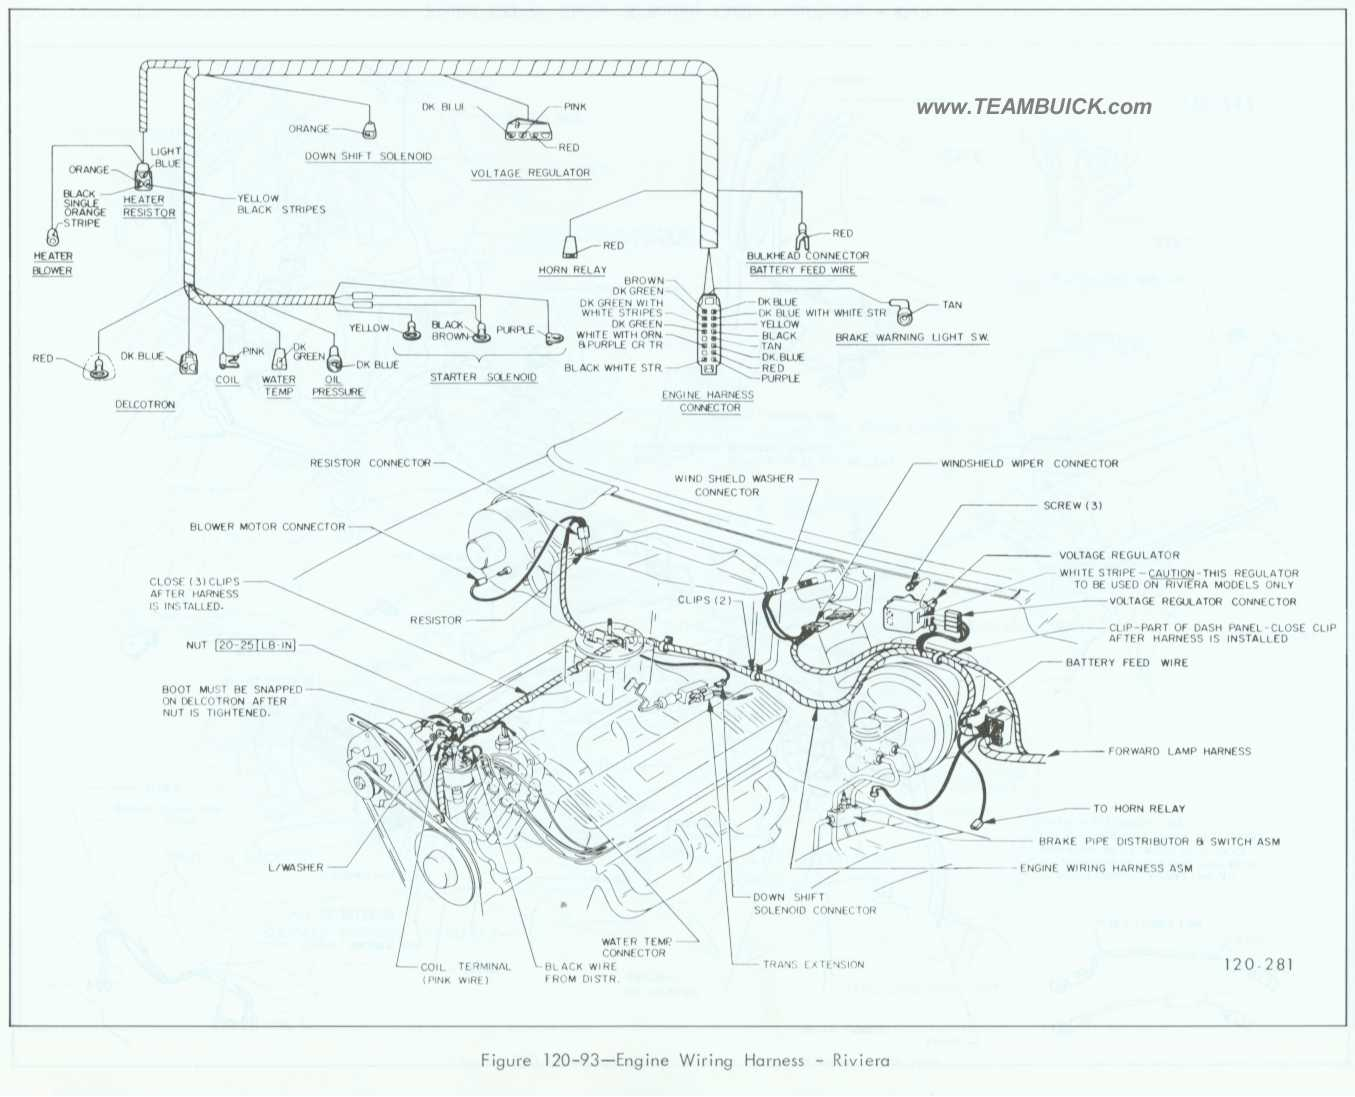 1972 buick skylark fuse box diagram